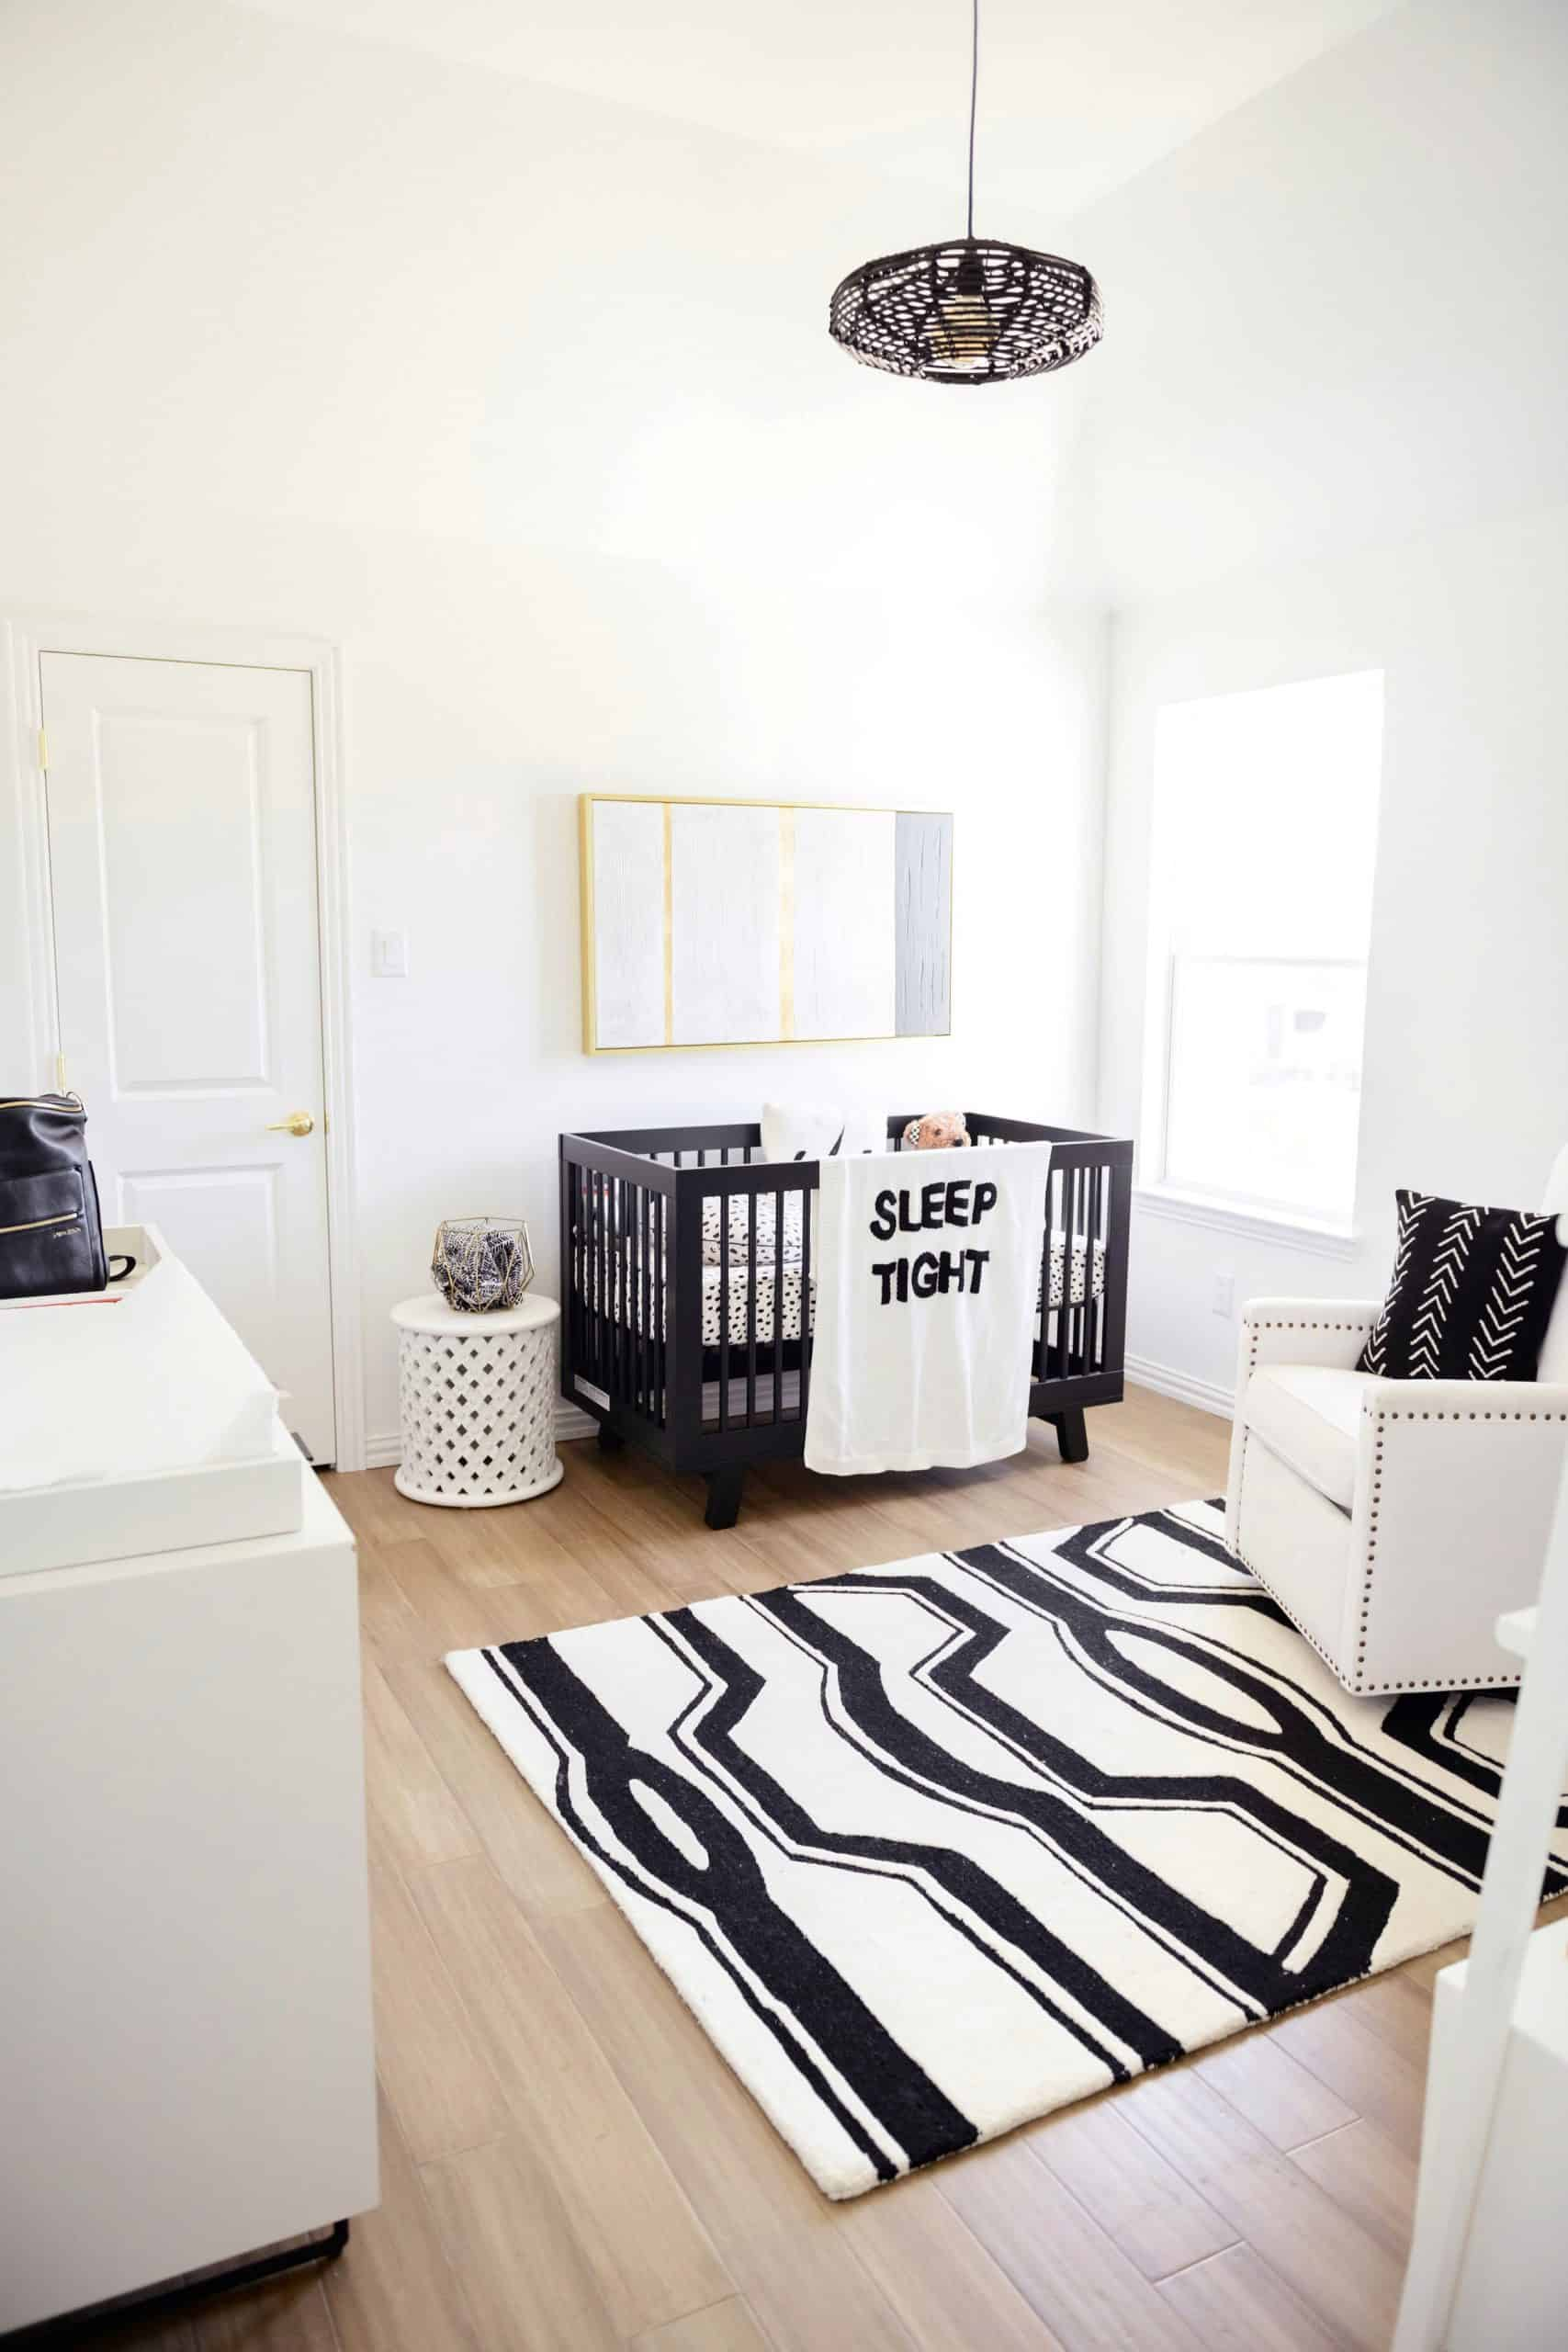 Wood Floor Installation by popular Dallas life and style blog, Glamorous Versatility: image of a boys room with light wood floors, black light fixture, black crib, black and white rug, white dresser, and white glider chair.